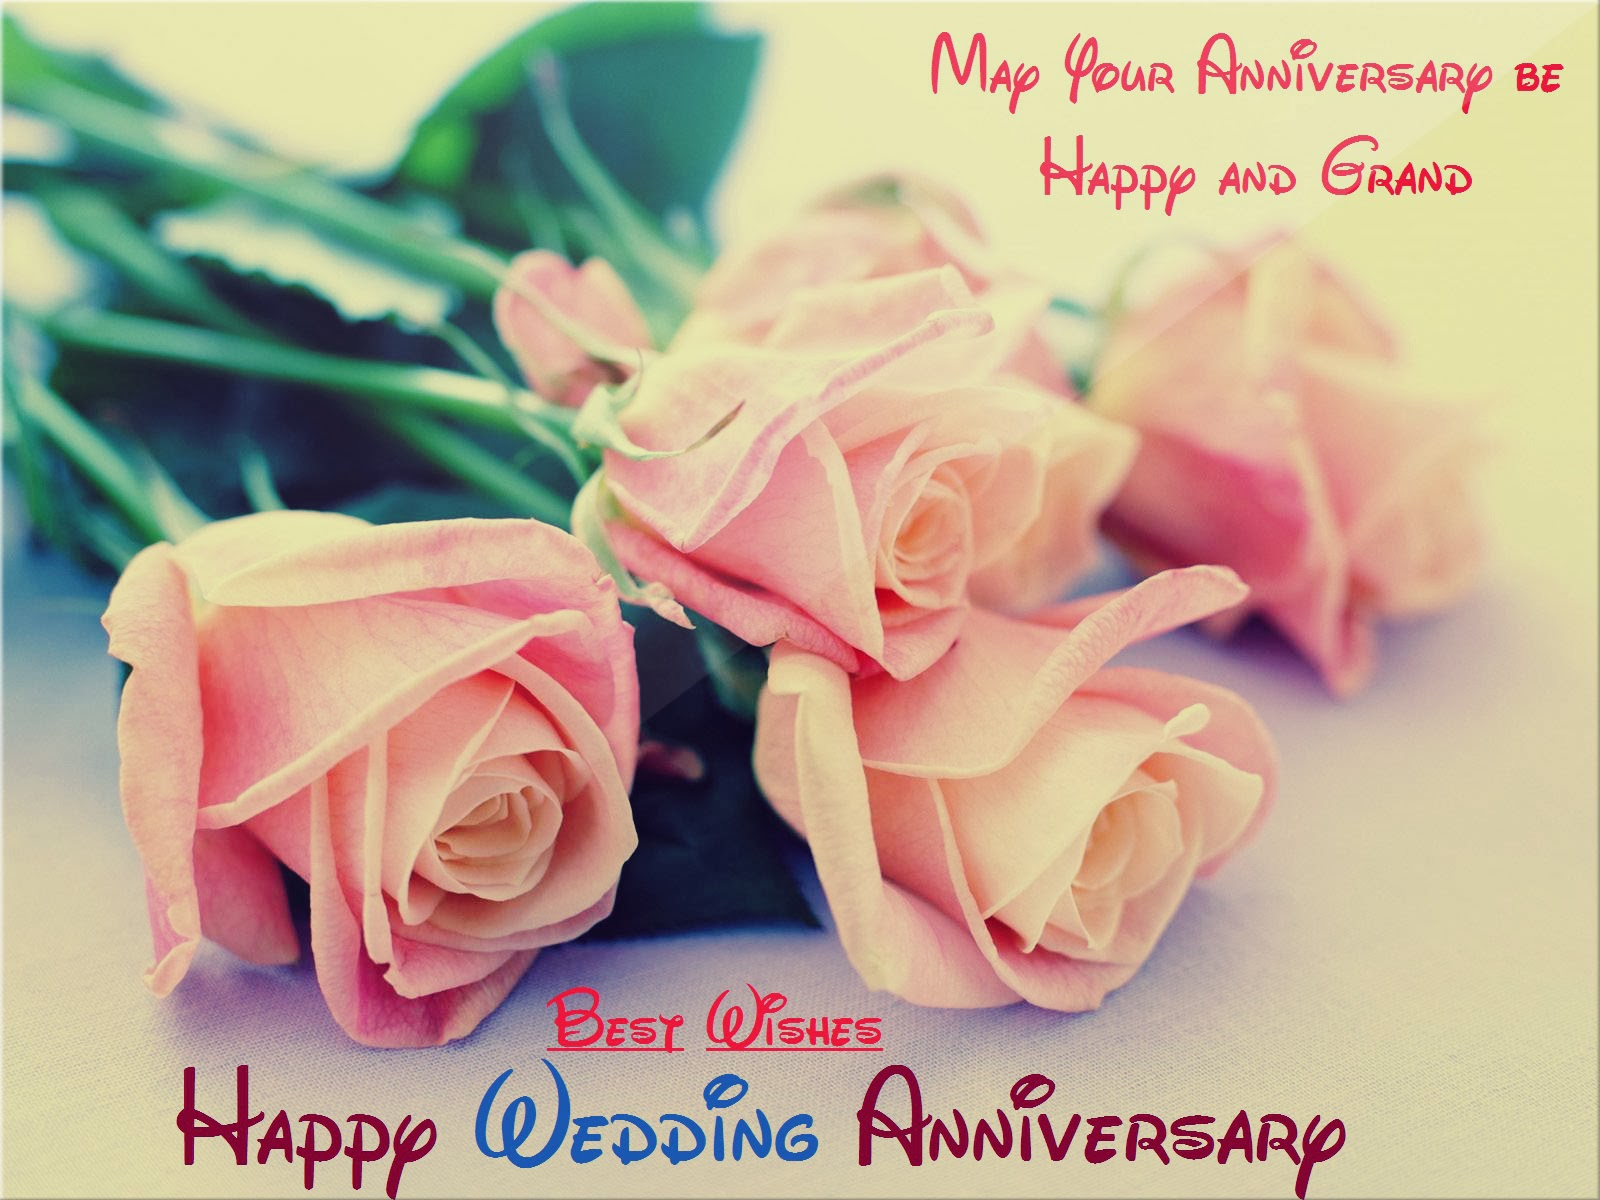 Anniversary message for friend ~ Wedding anniversary wishes for friends with special messages